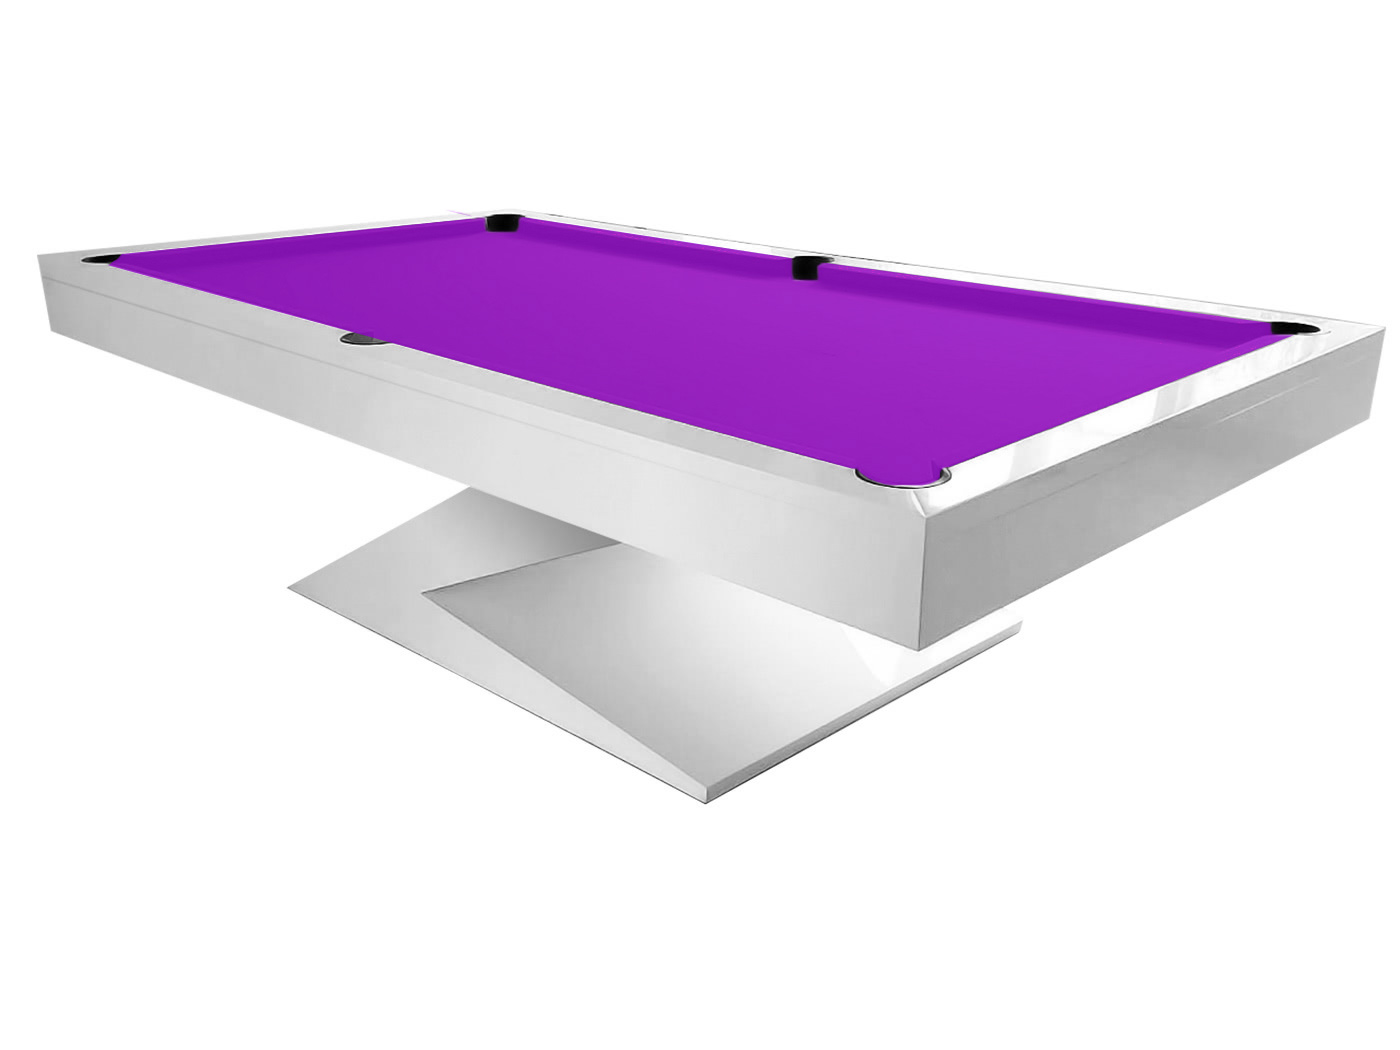 Zen pool table